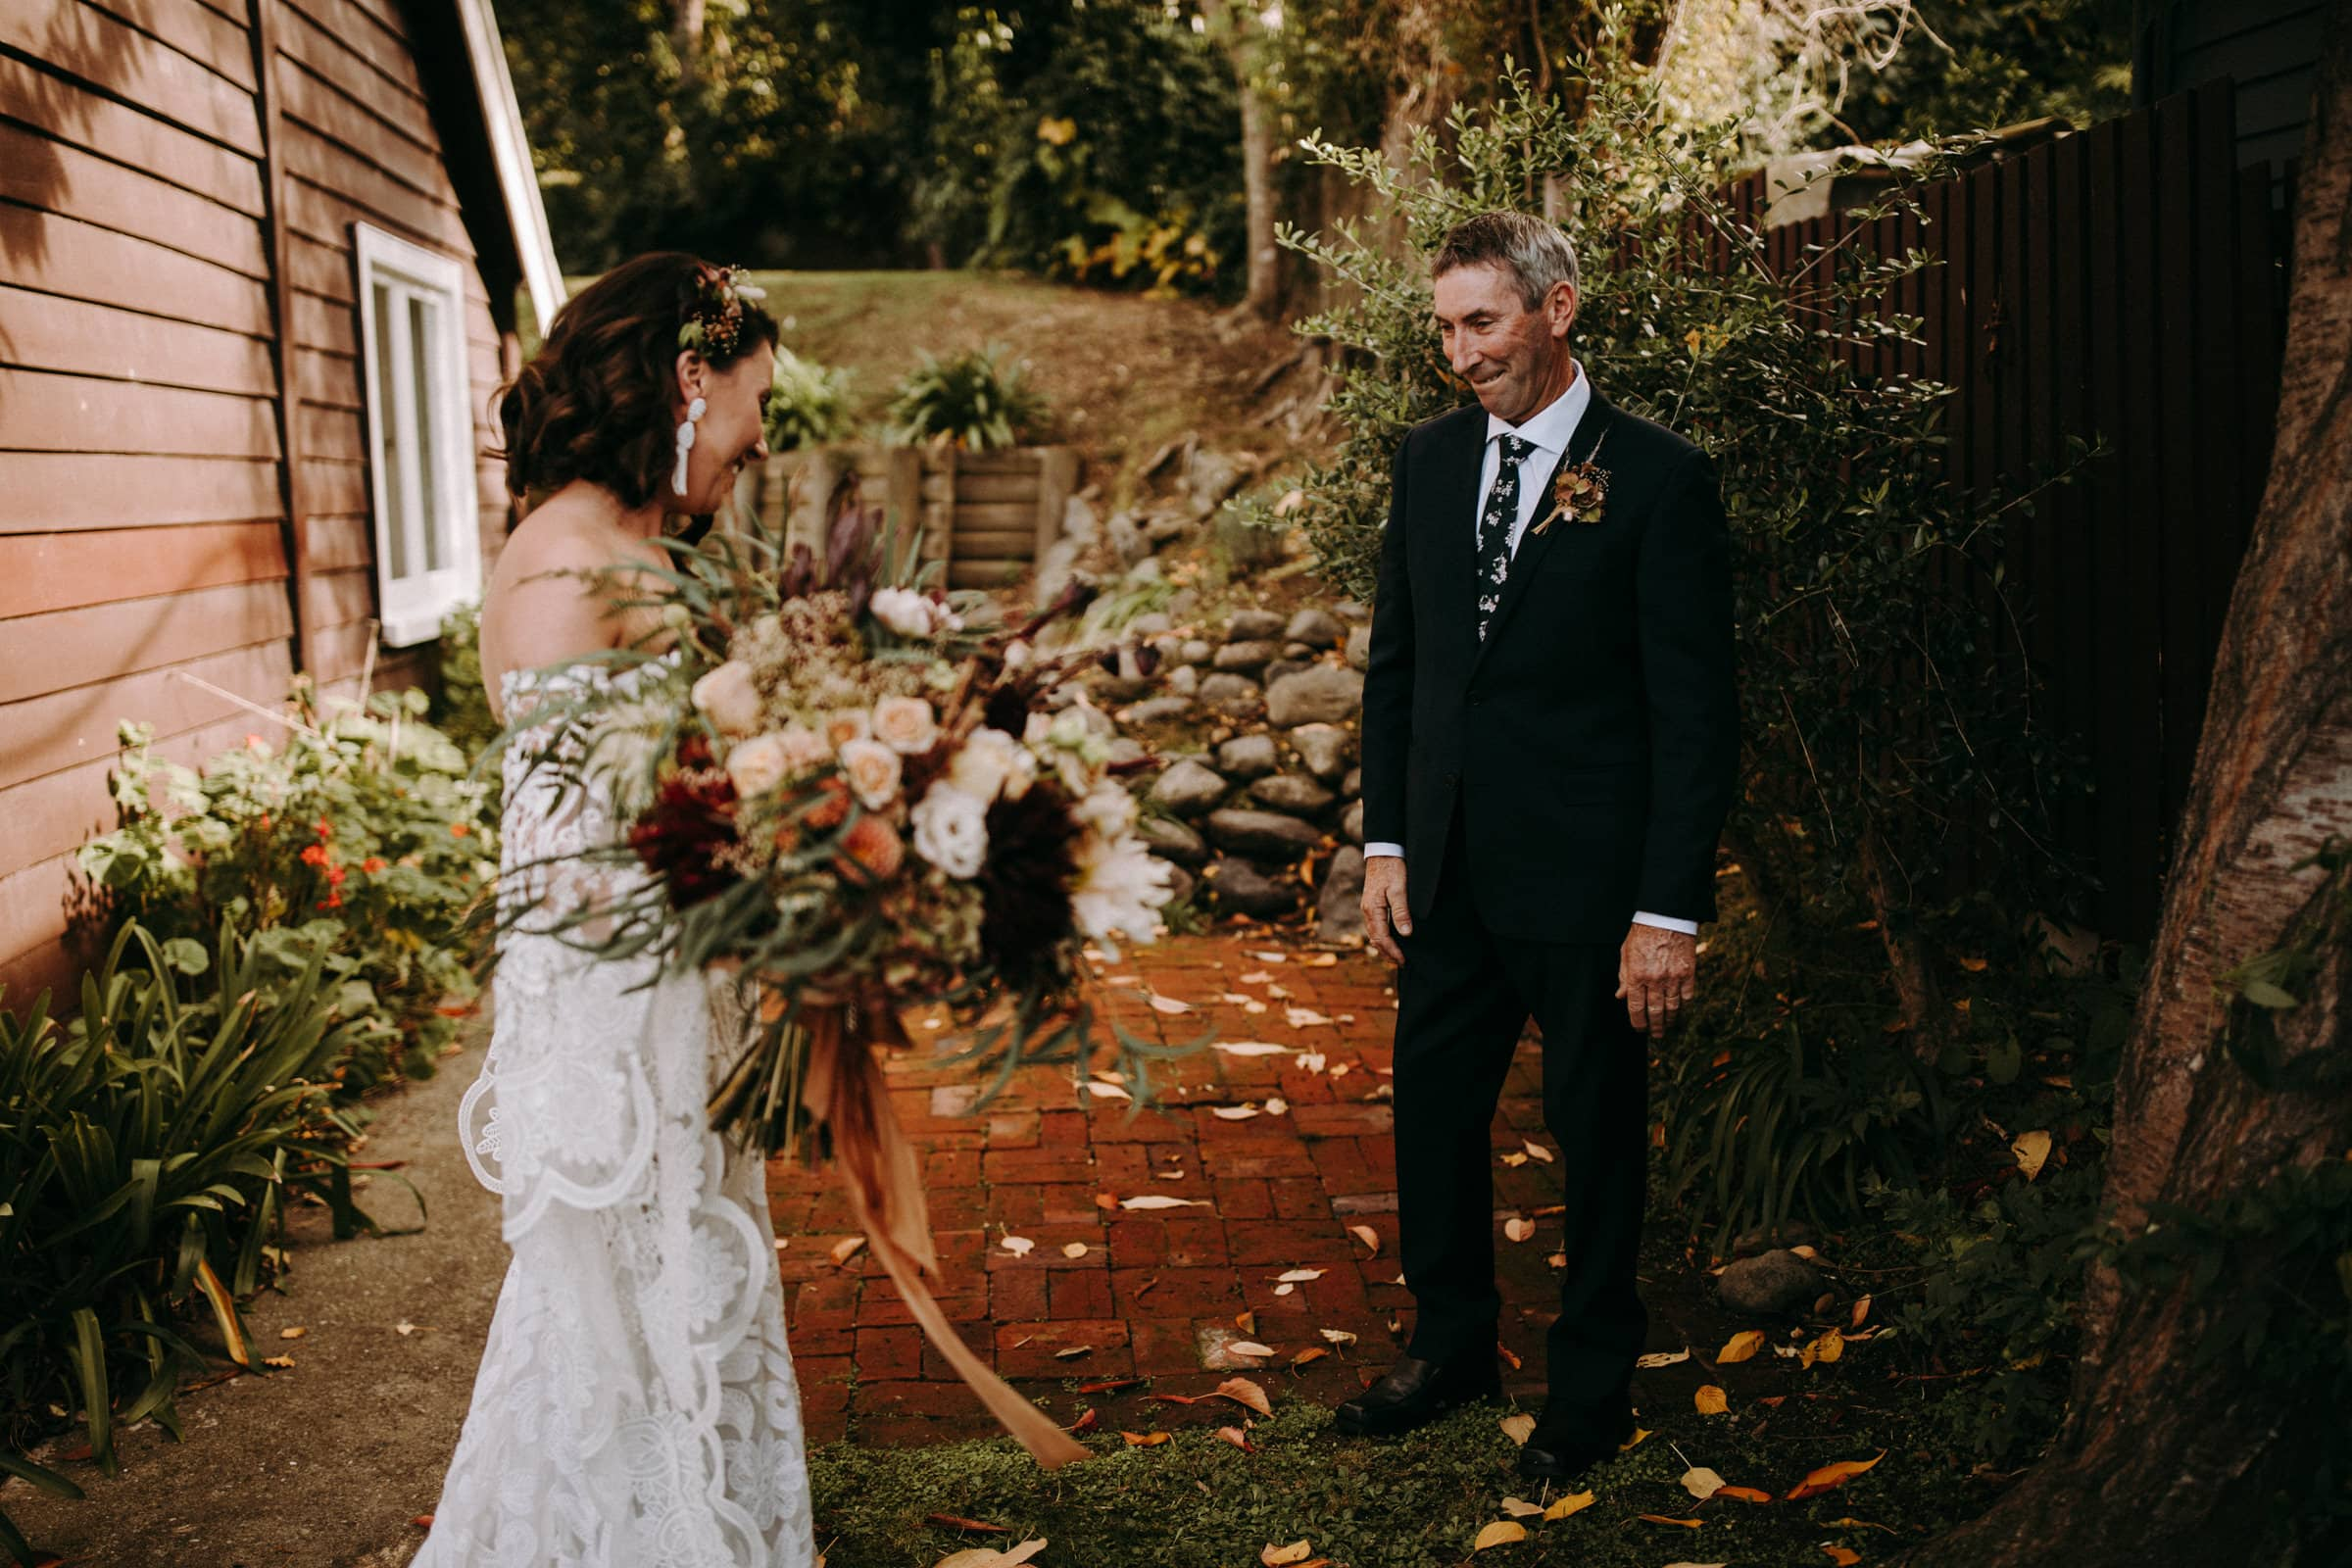 A bride and her father are looking at each other and are standing in the garden.